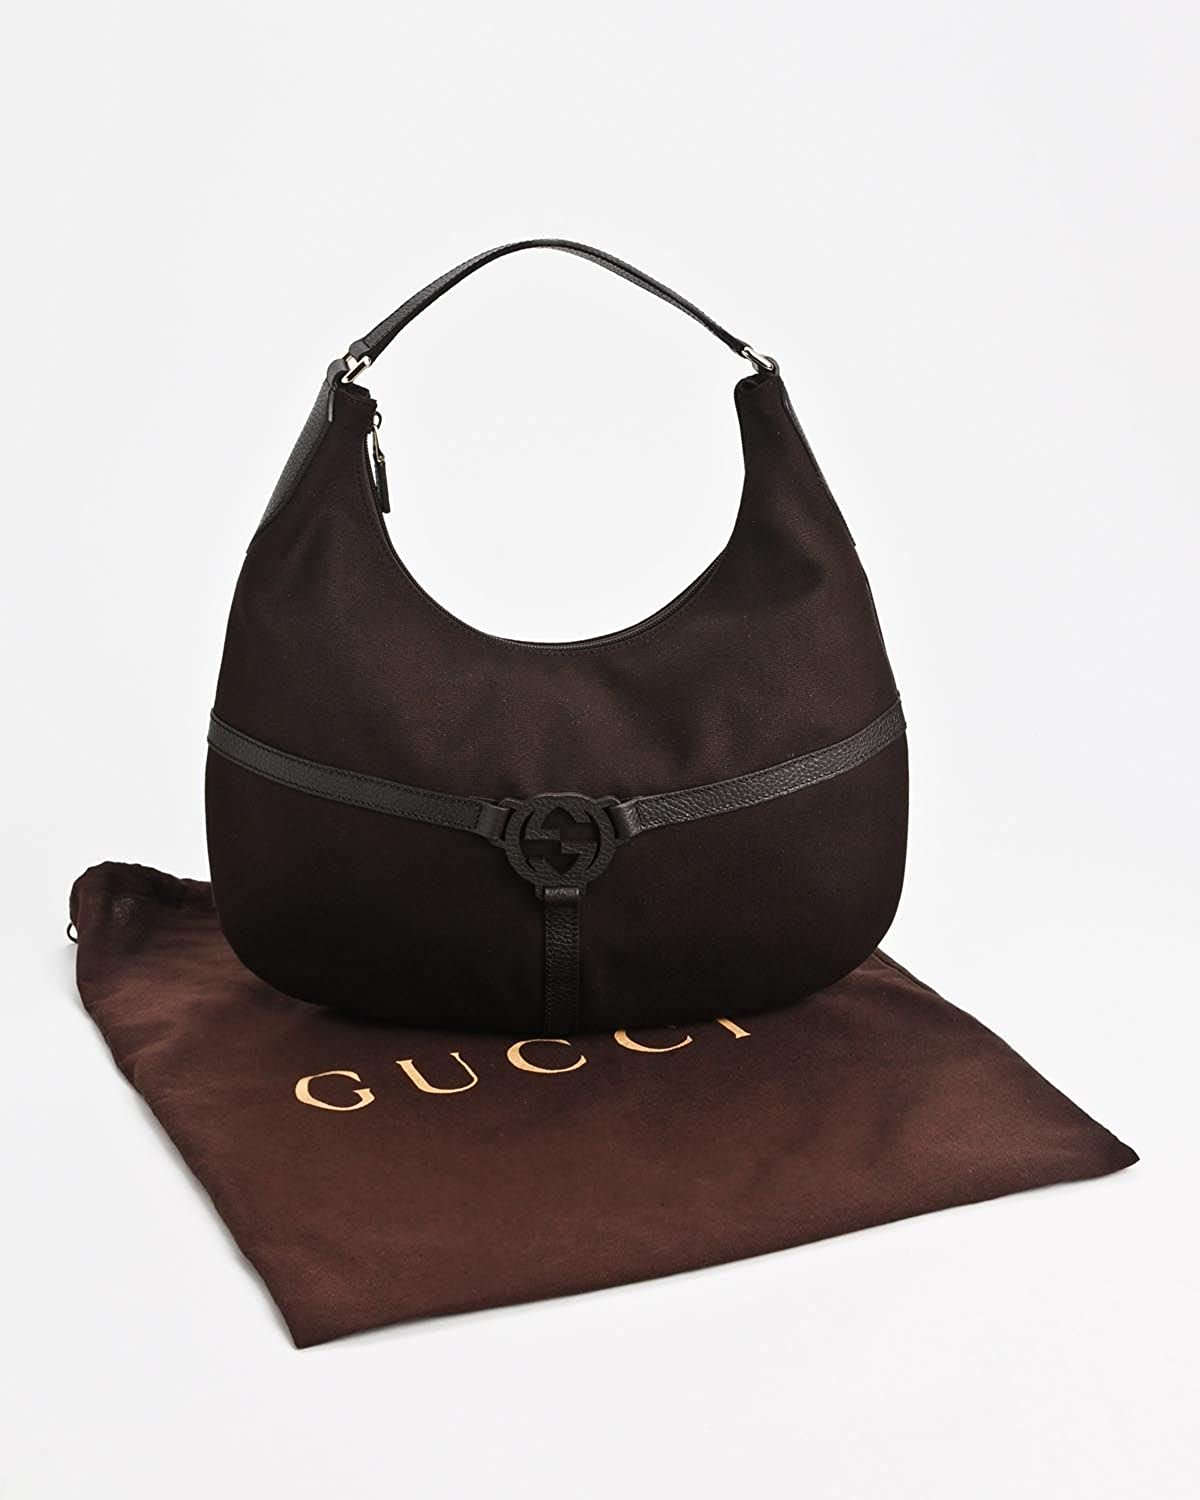 824b6a698b78 Amazon.com: Gucci Brown Reins Canvas Leather Hobo Bag: Shoes